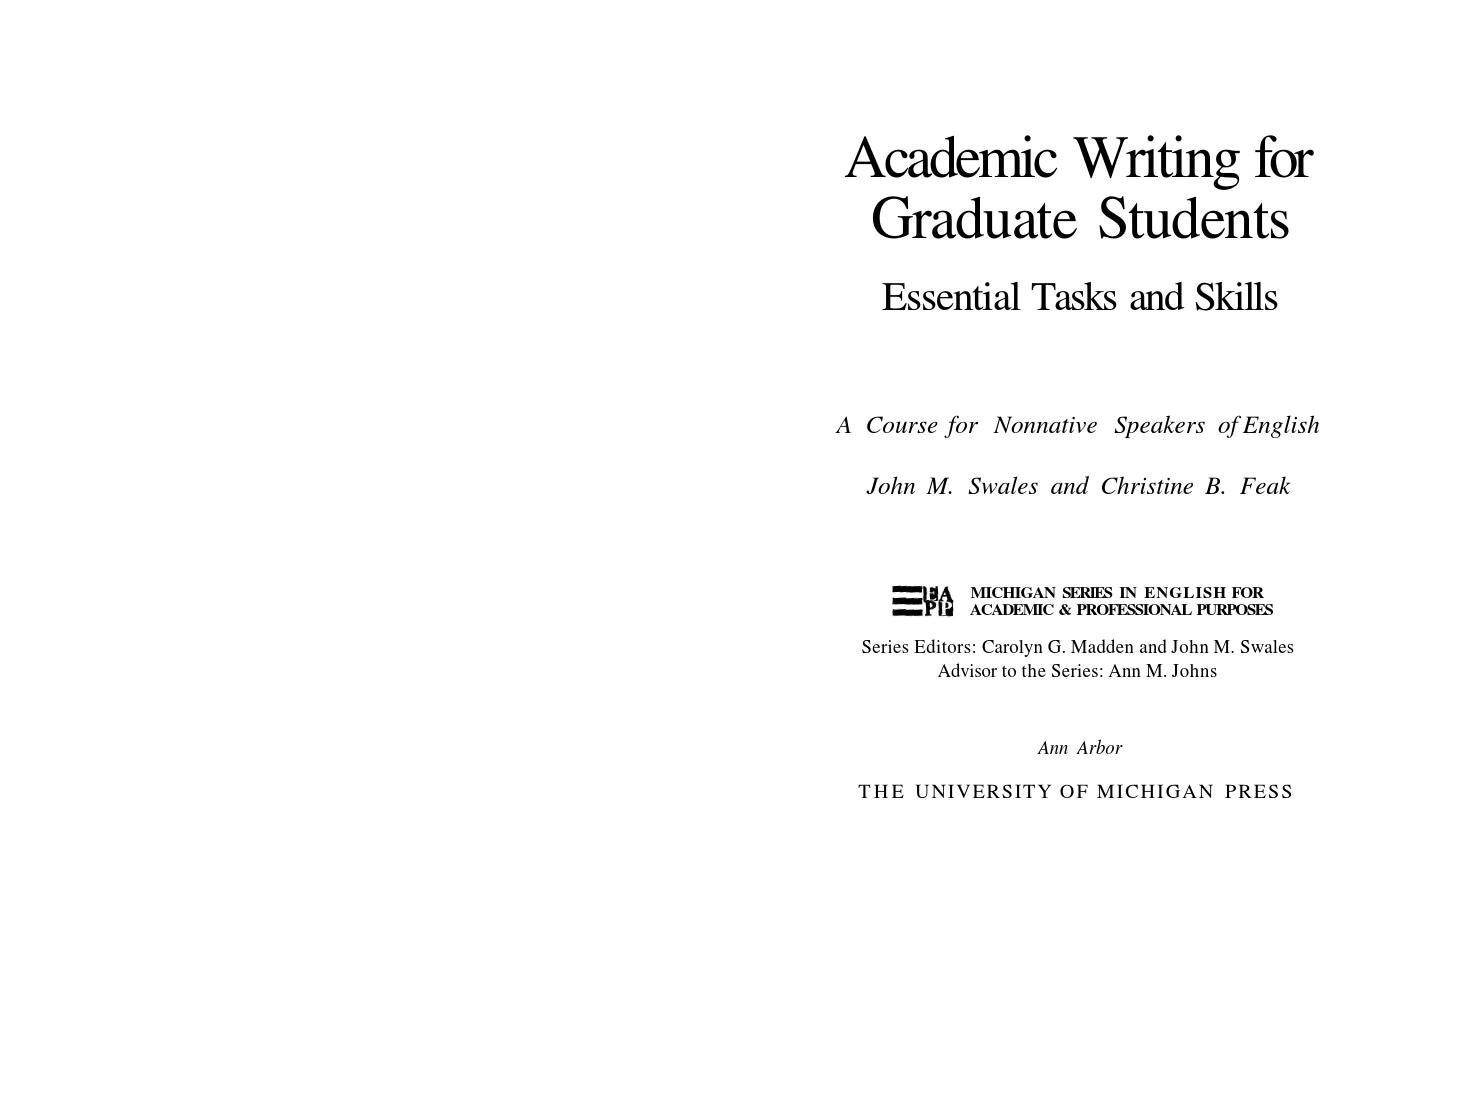 academic writing for graduate students second edition